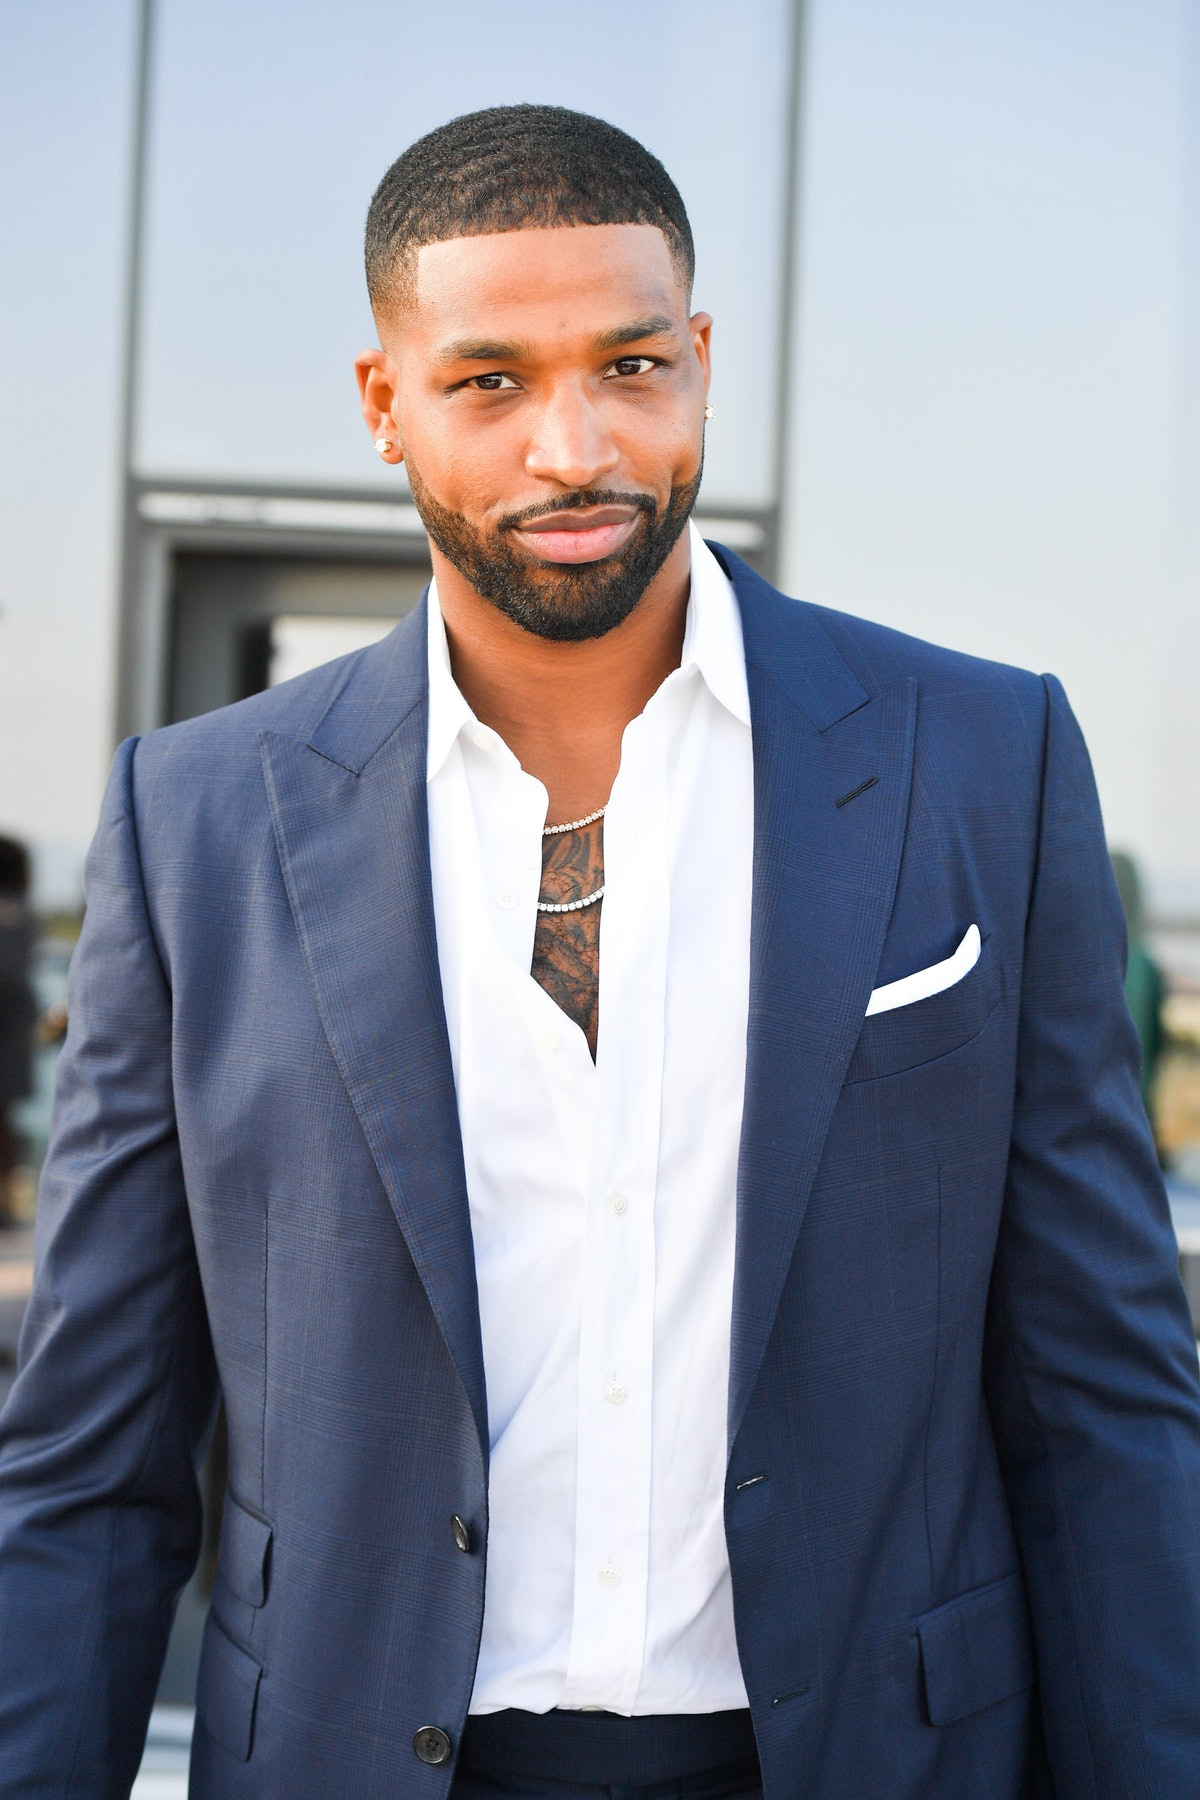 TORONTO, ONTARIO - AUGUST 01: NBA Champion Tristan Thompson attends The Amari Thompson Soiree 2019 in support of Epilepsy Toronto held at The Globe and Mail Centre on August 01, 2019 in Toronto, Canada. (Photo by George Pimentel/Getty Images)